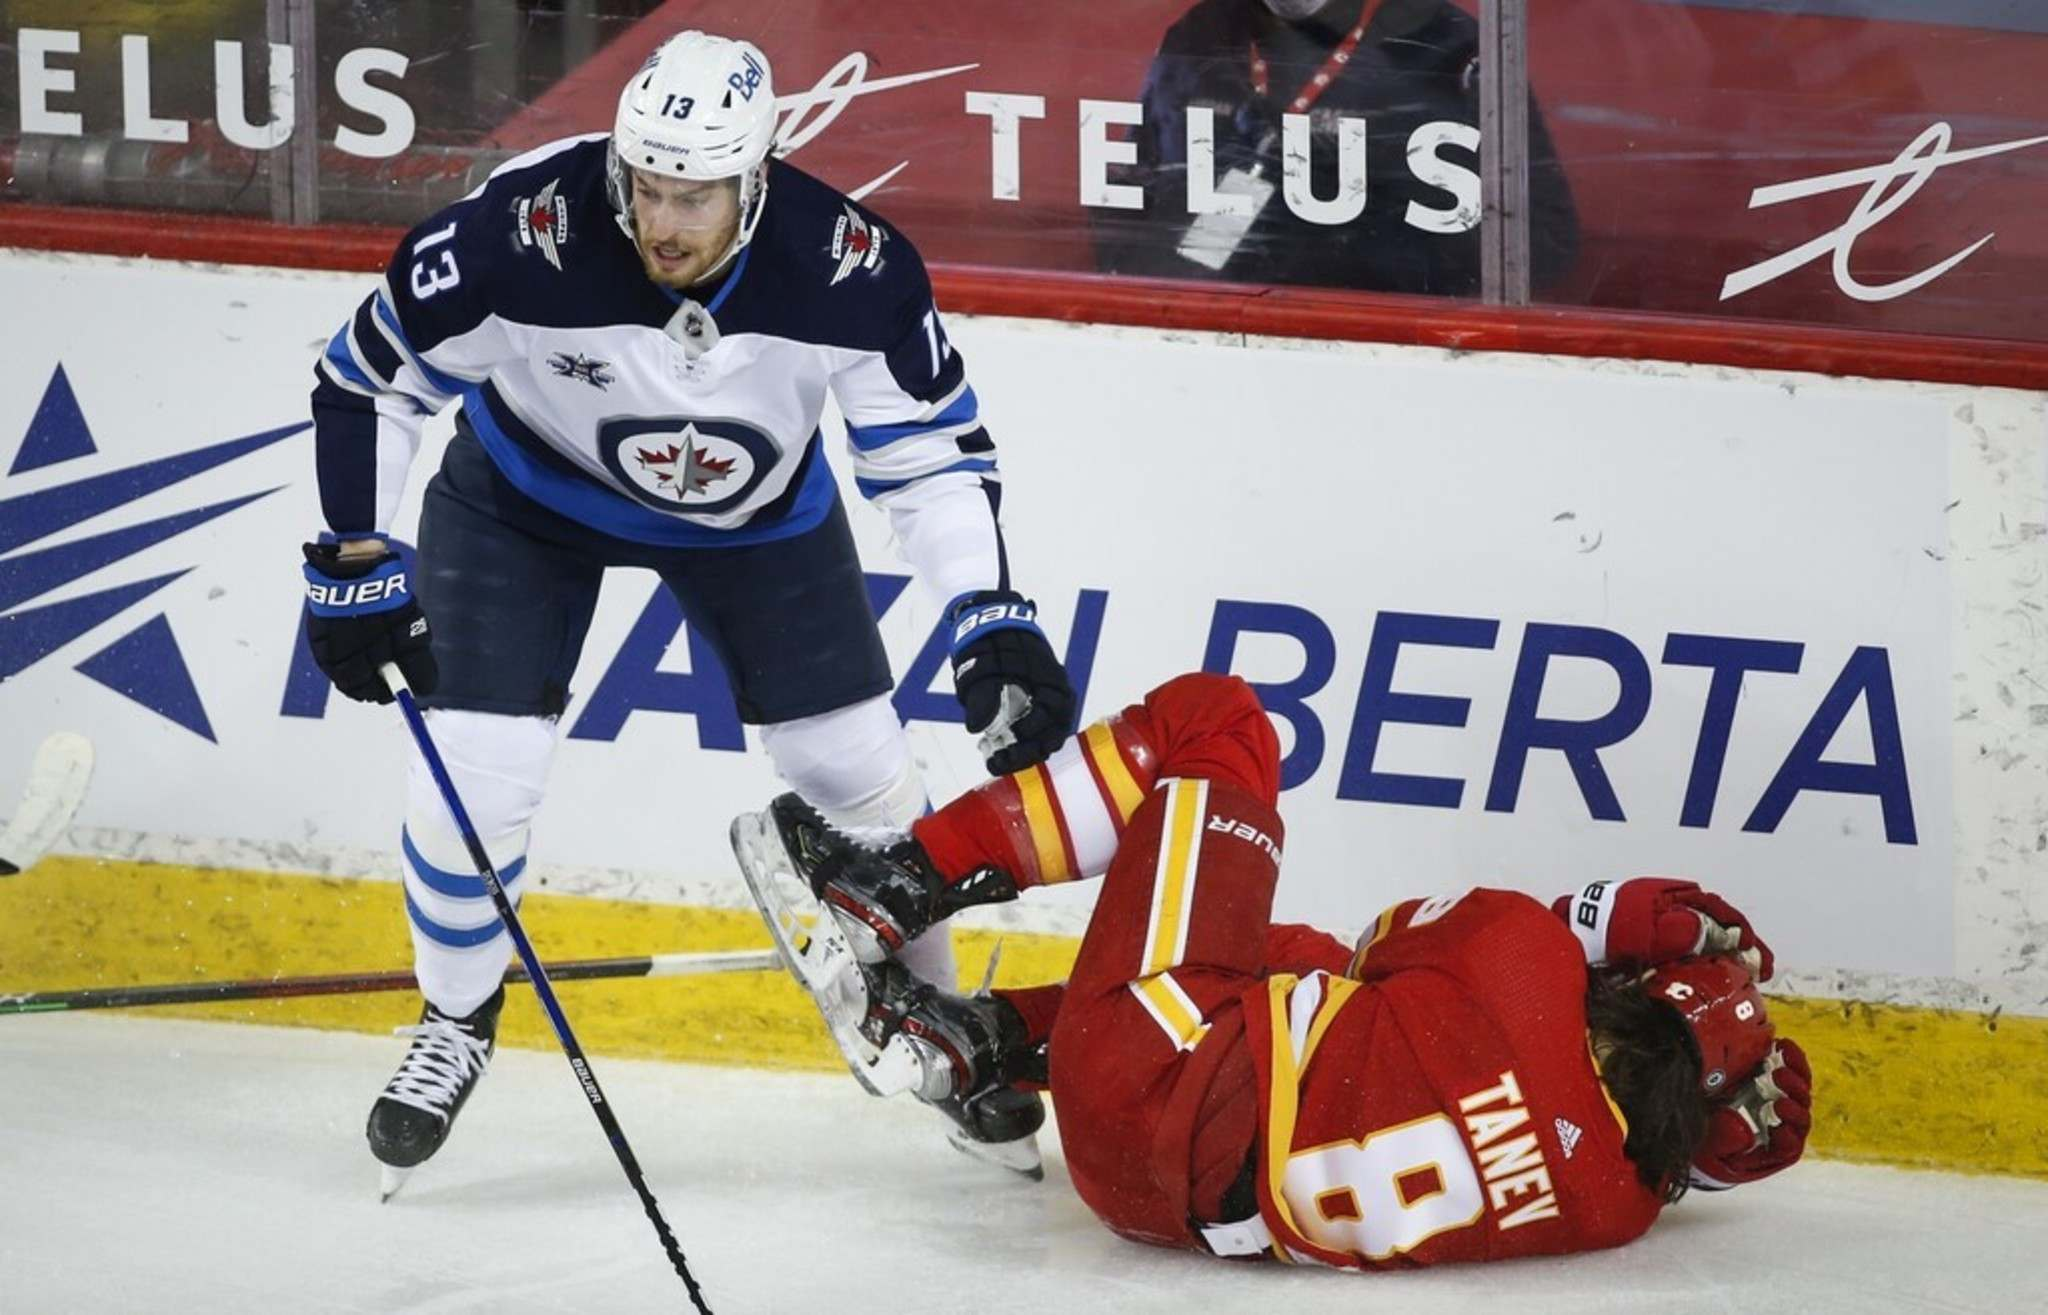 Pierre-Luc Dubois has played on different lines with several players during his time in Winnipeg. (Jeff McIntosh / The Canadian Press files)</p>